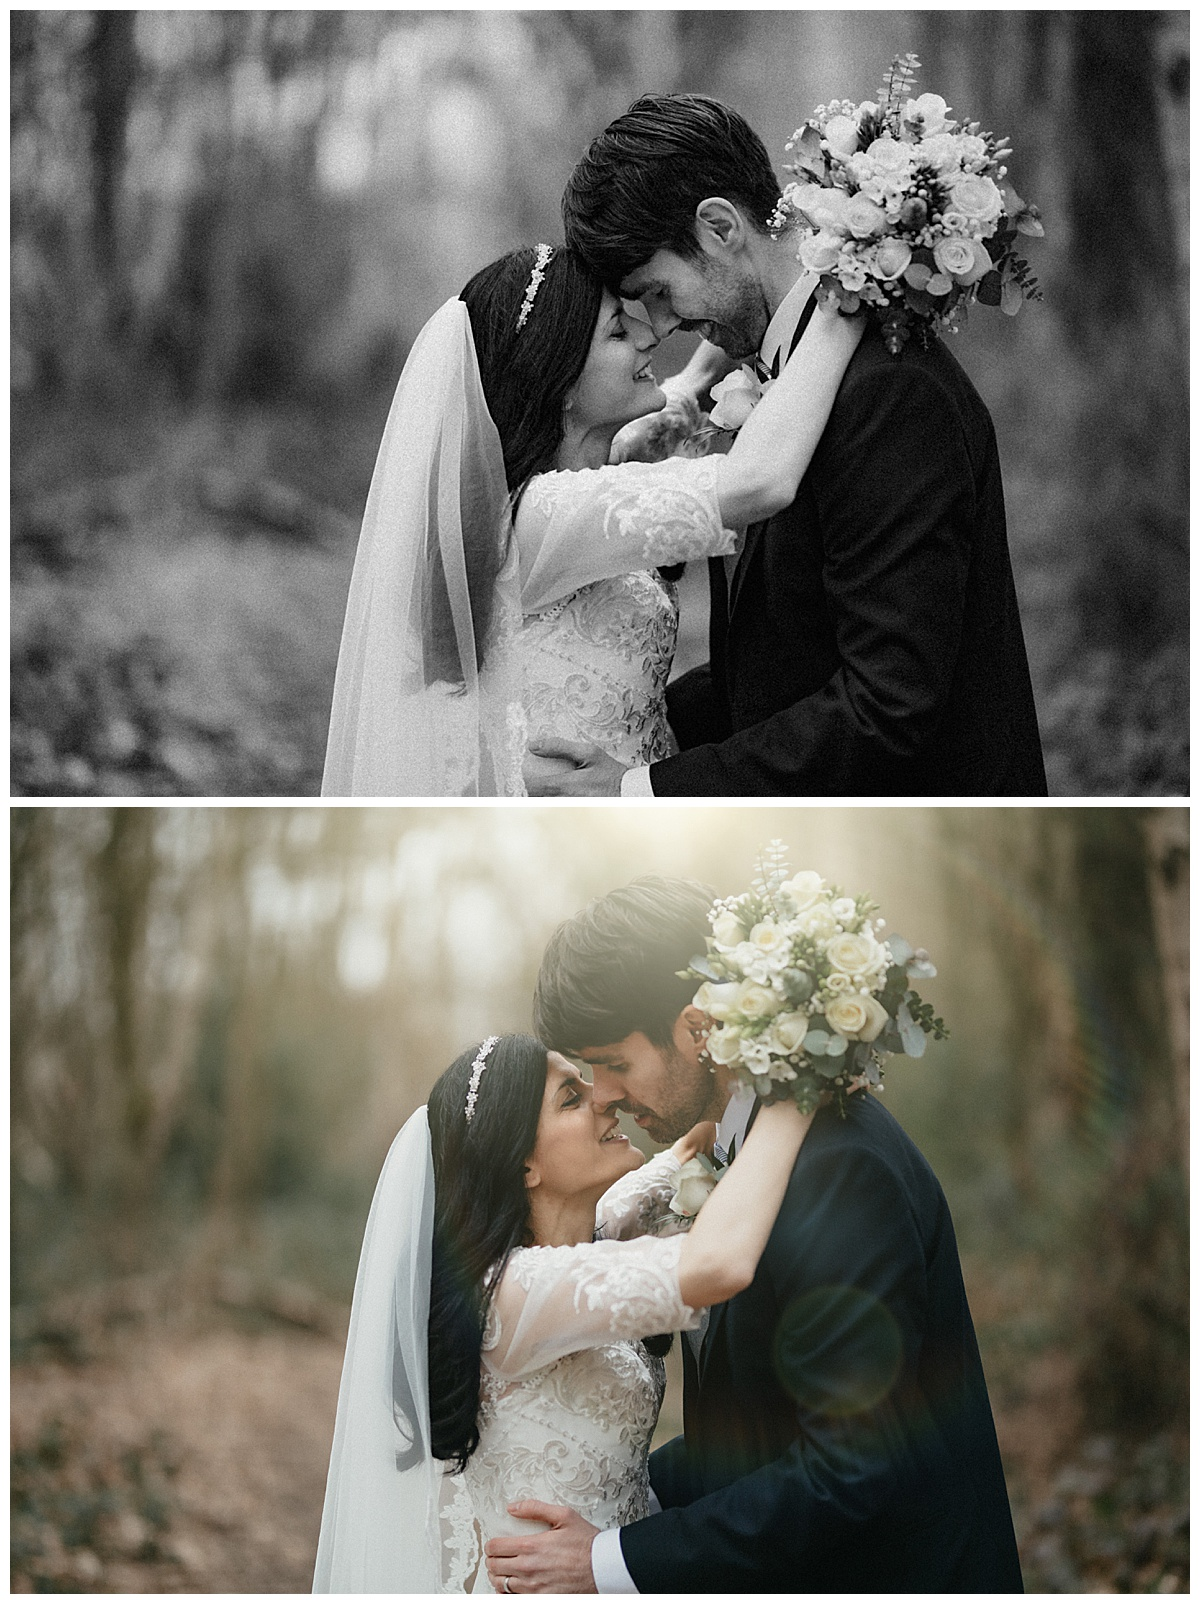 Bride and groom kiss and hold each other